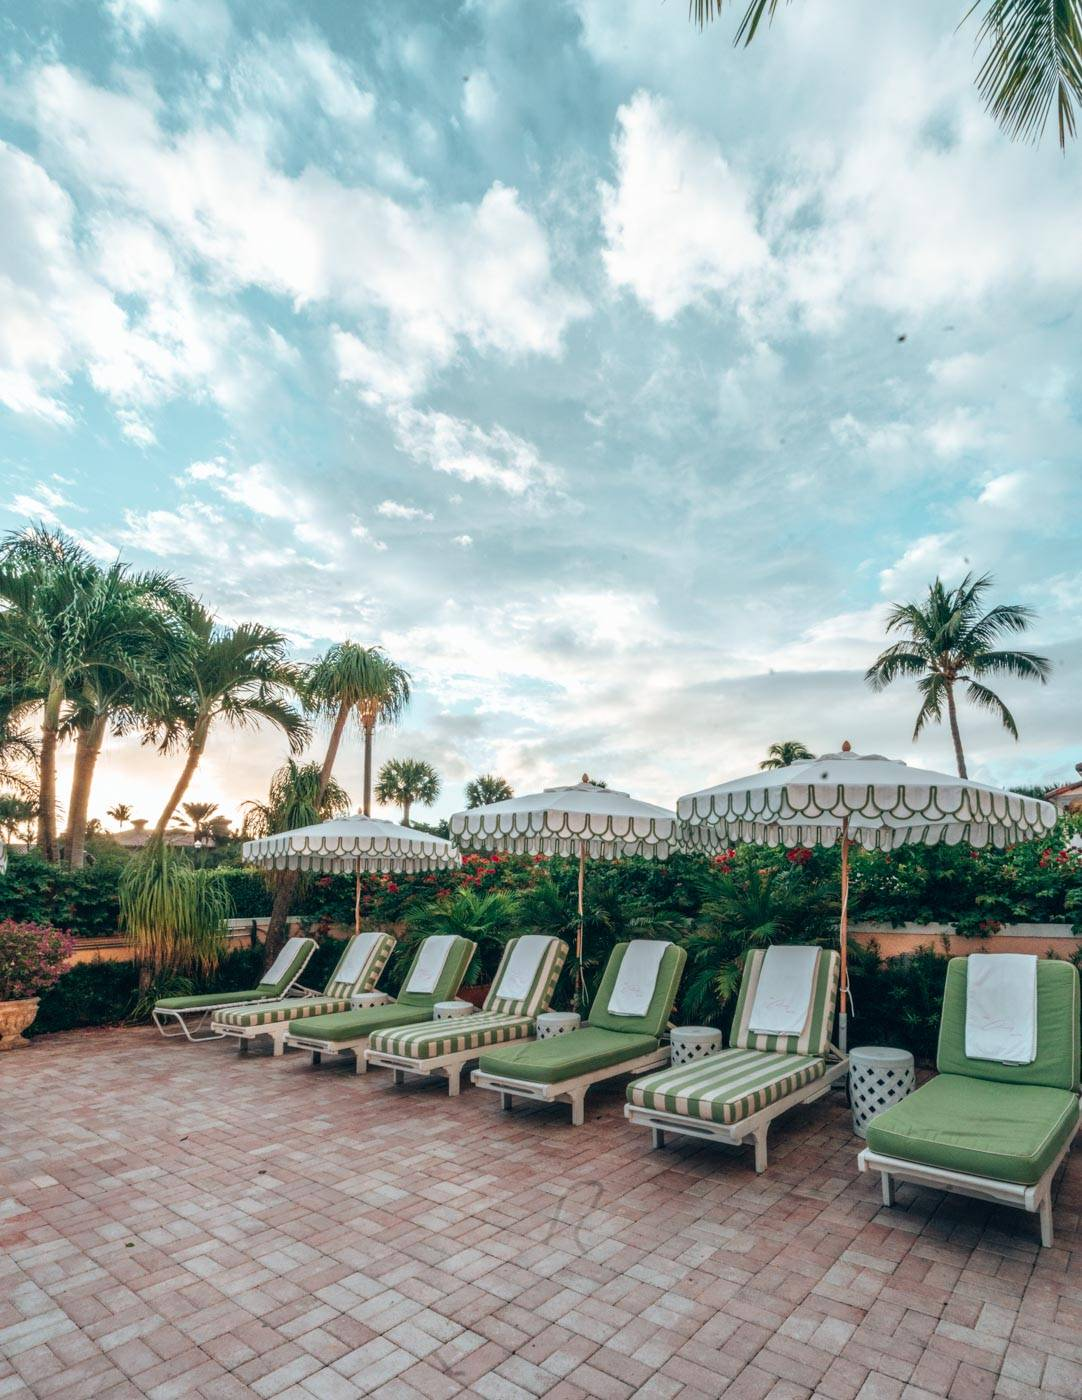 The best place to stay in Palm Beach- The Colony. This Palm Beach Travel guide covers everything from where to stay, what to do, and where to eat.